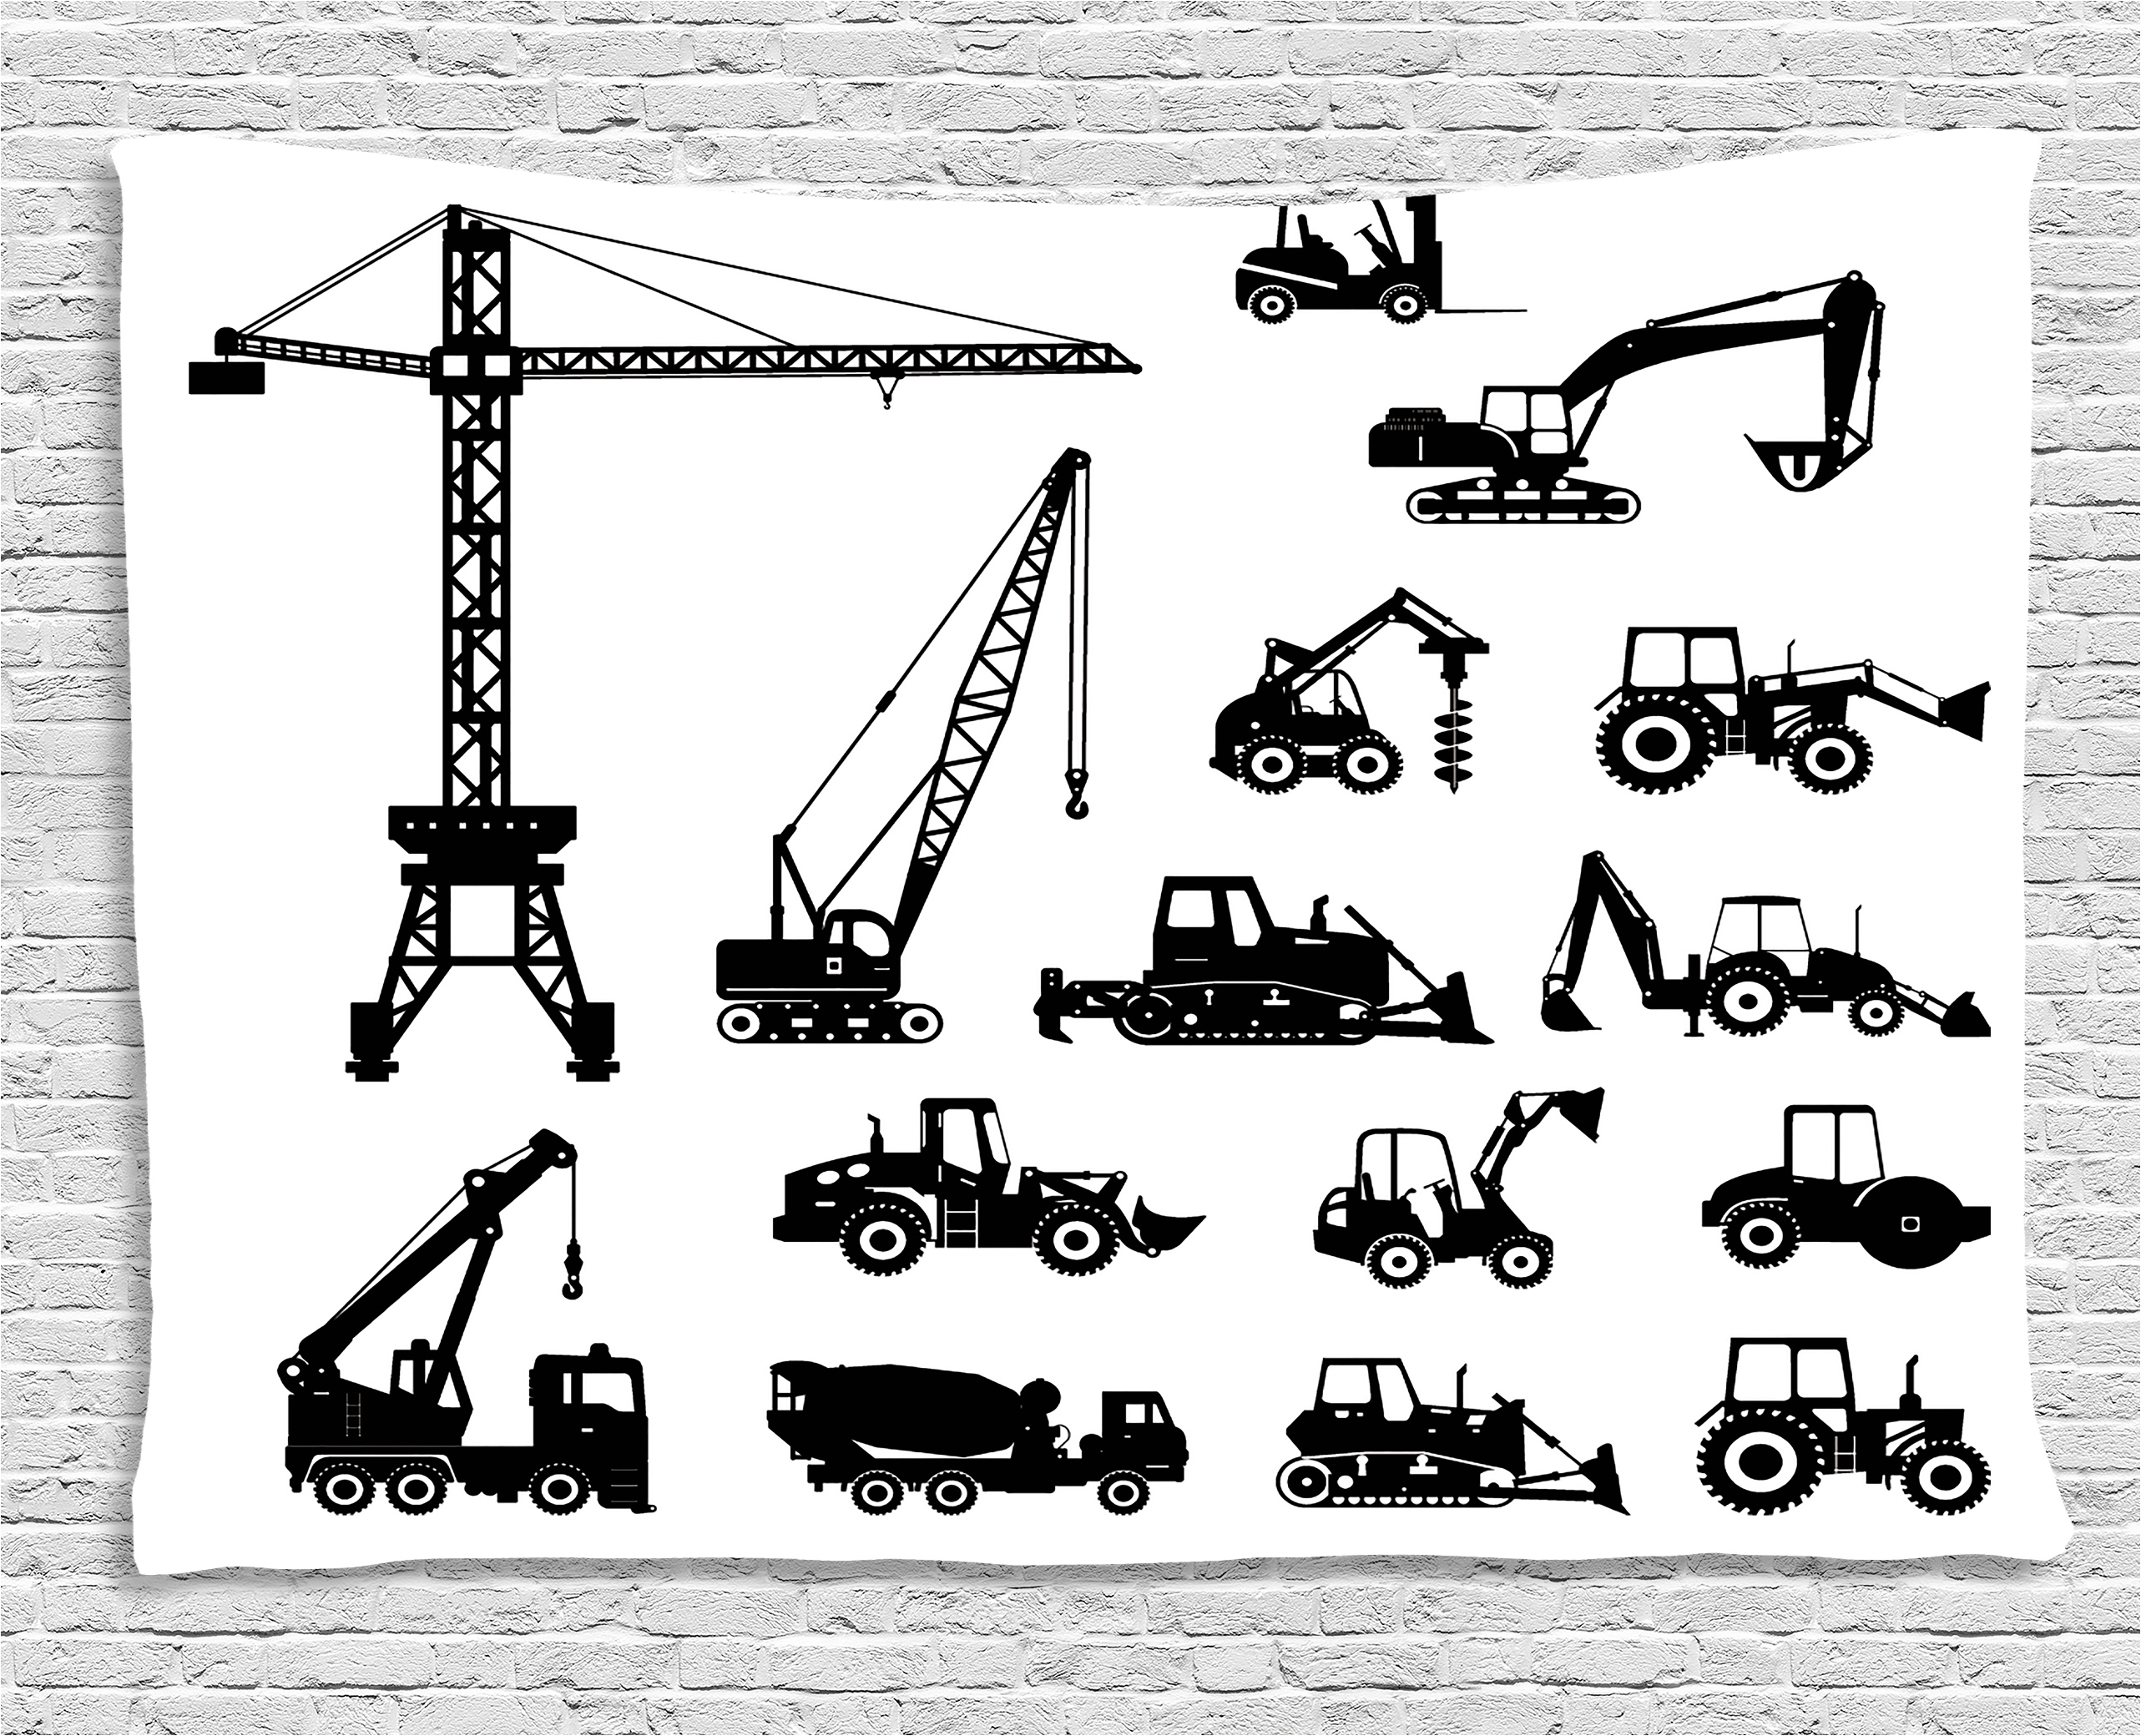 Construction Tapestry, Black Silhouettes Concrete Mixer Machines Industrial Set Trucks Tractors, Wall Hanging for... by Kozmos